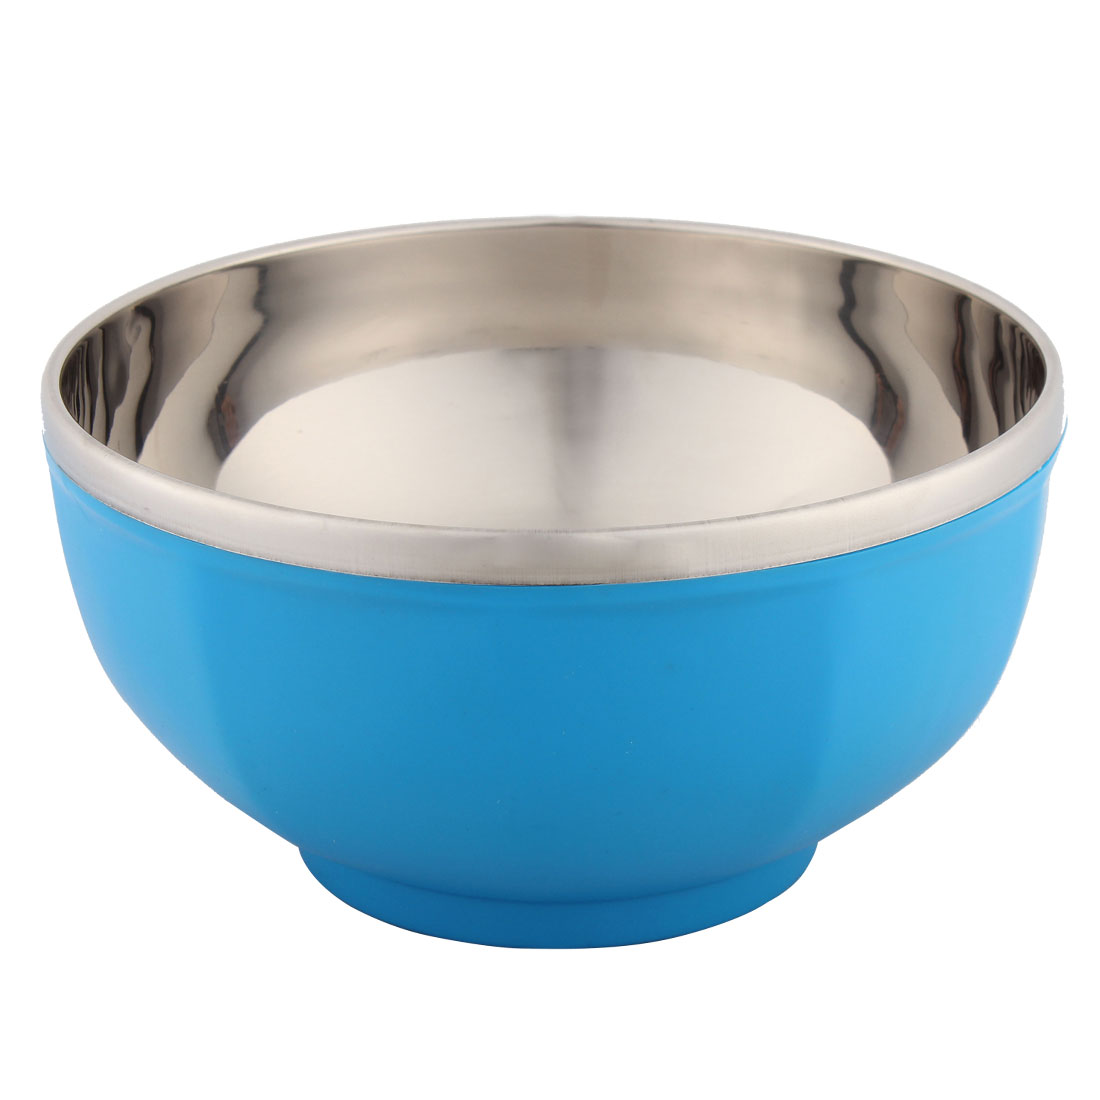 Household Cereal Salad Stainless Steel Food Dinner Bowl Blue 16.5cm Dia